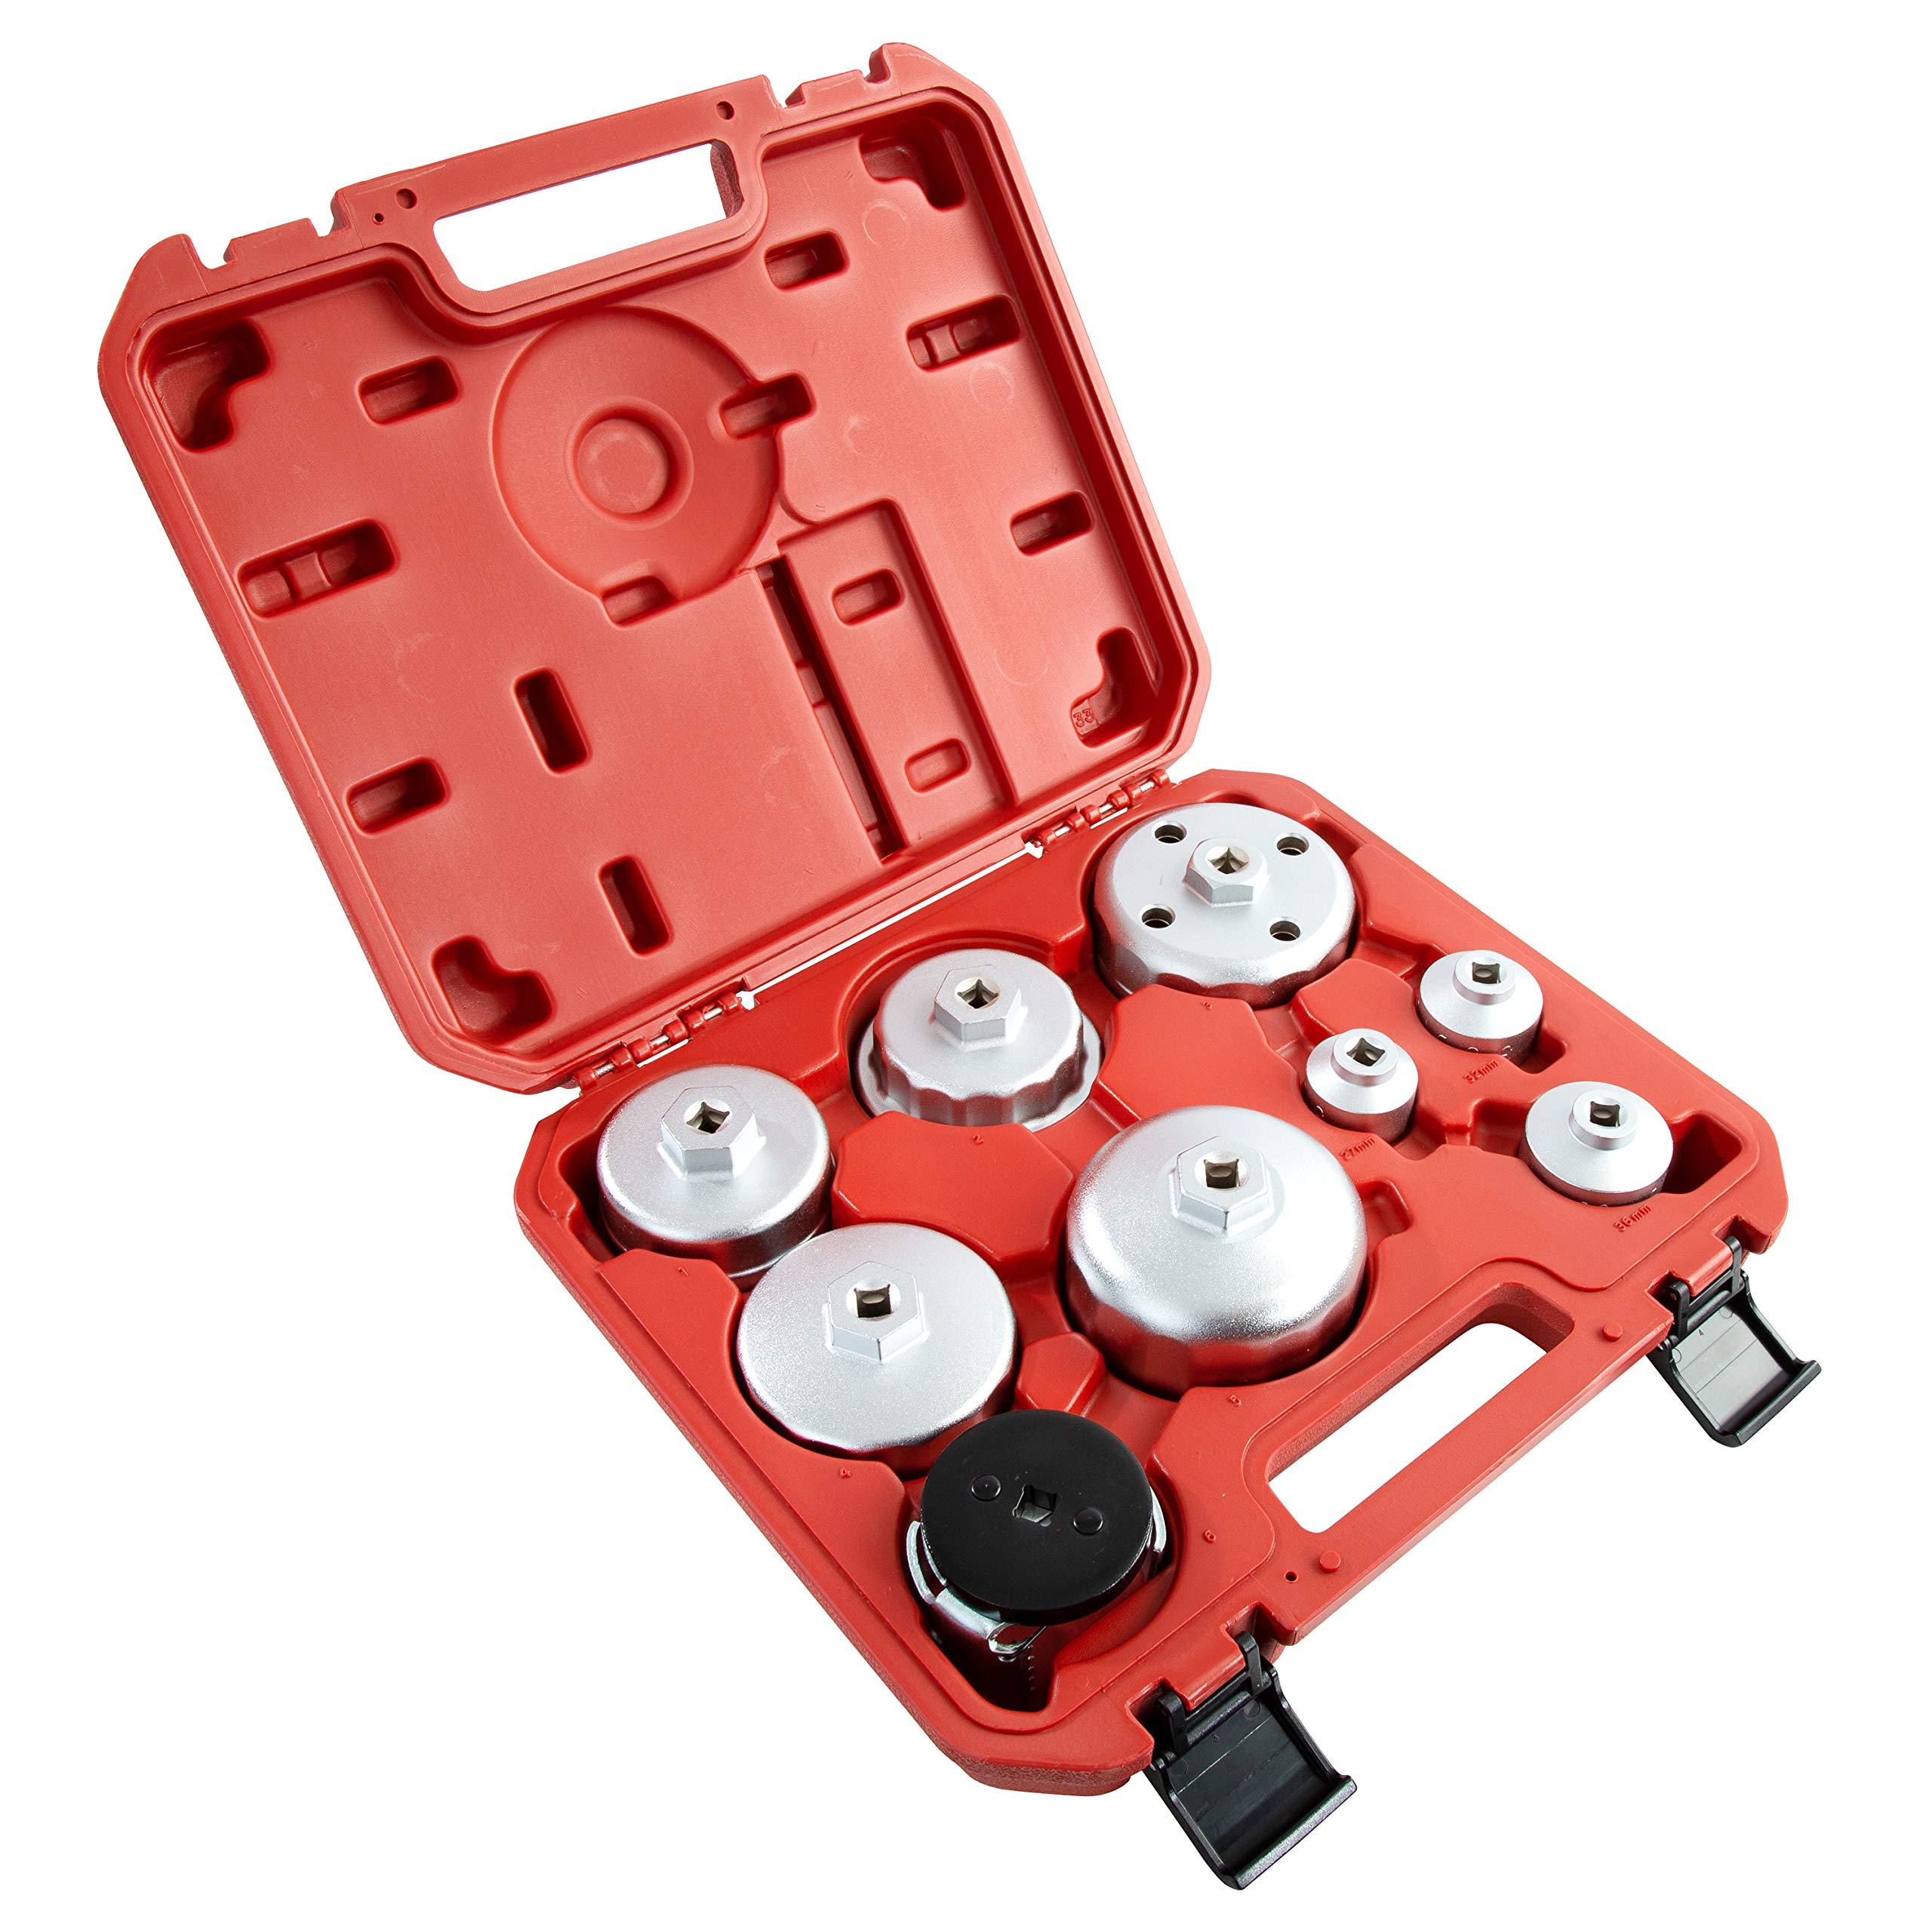 OEMTOOLS 27199 Oil Filter Cap Wrench Set (9 Piece) by OEMTOOLS (Image #1)